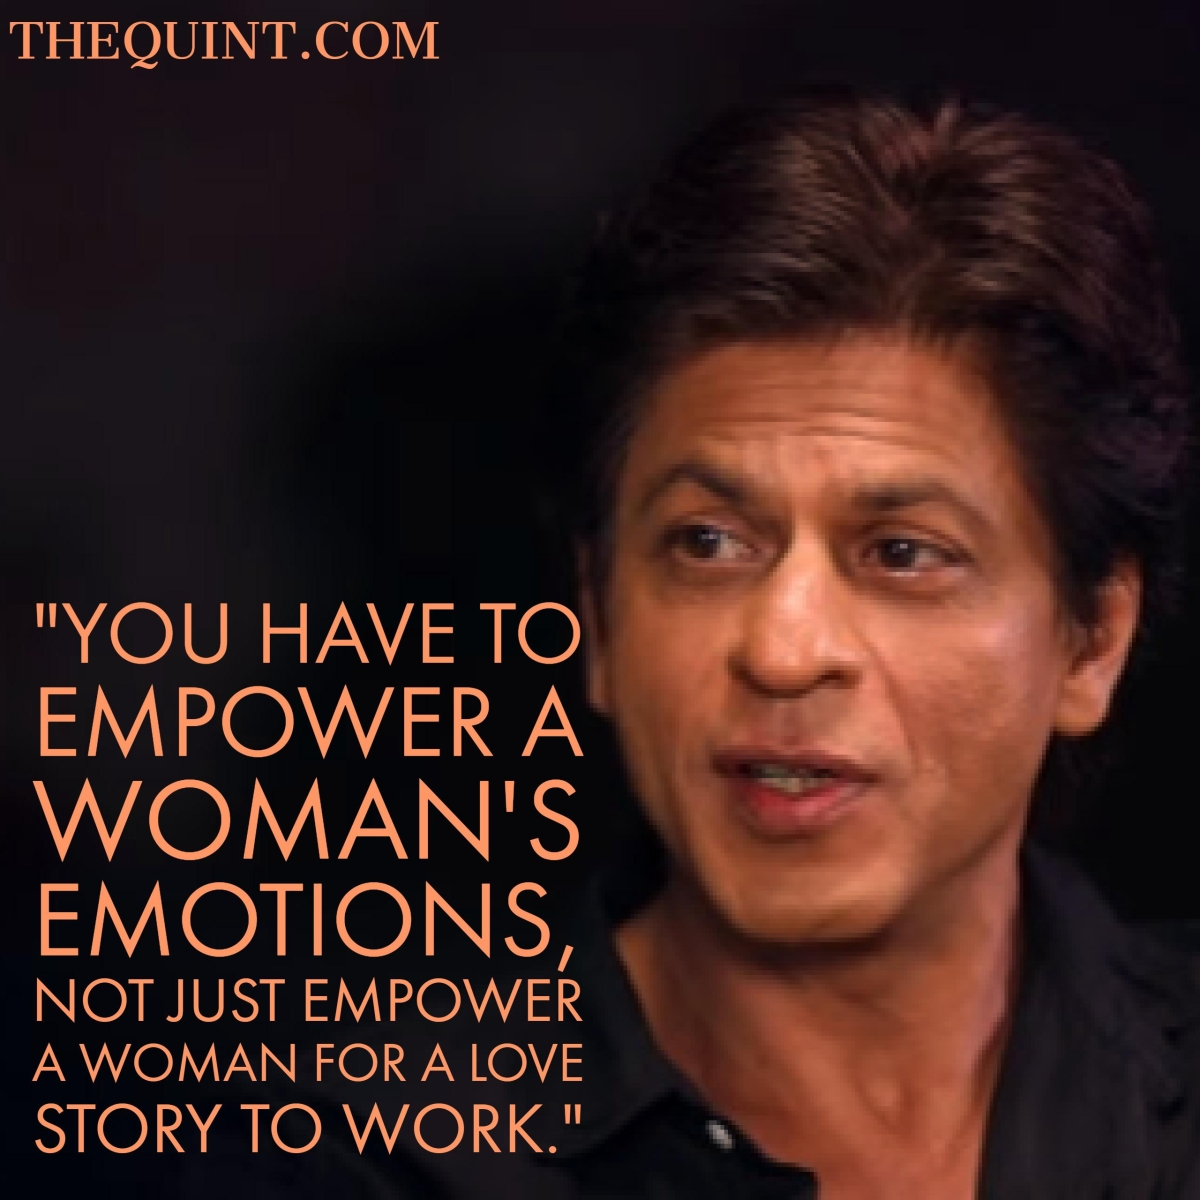 7 Quotes That Make Shah Rukh Khan The Quintessential Lover Boy The